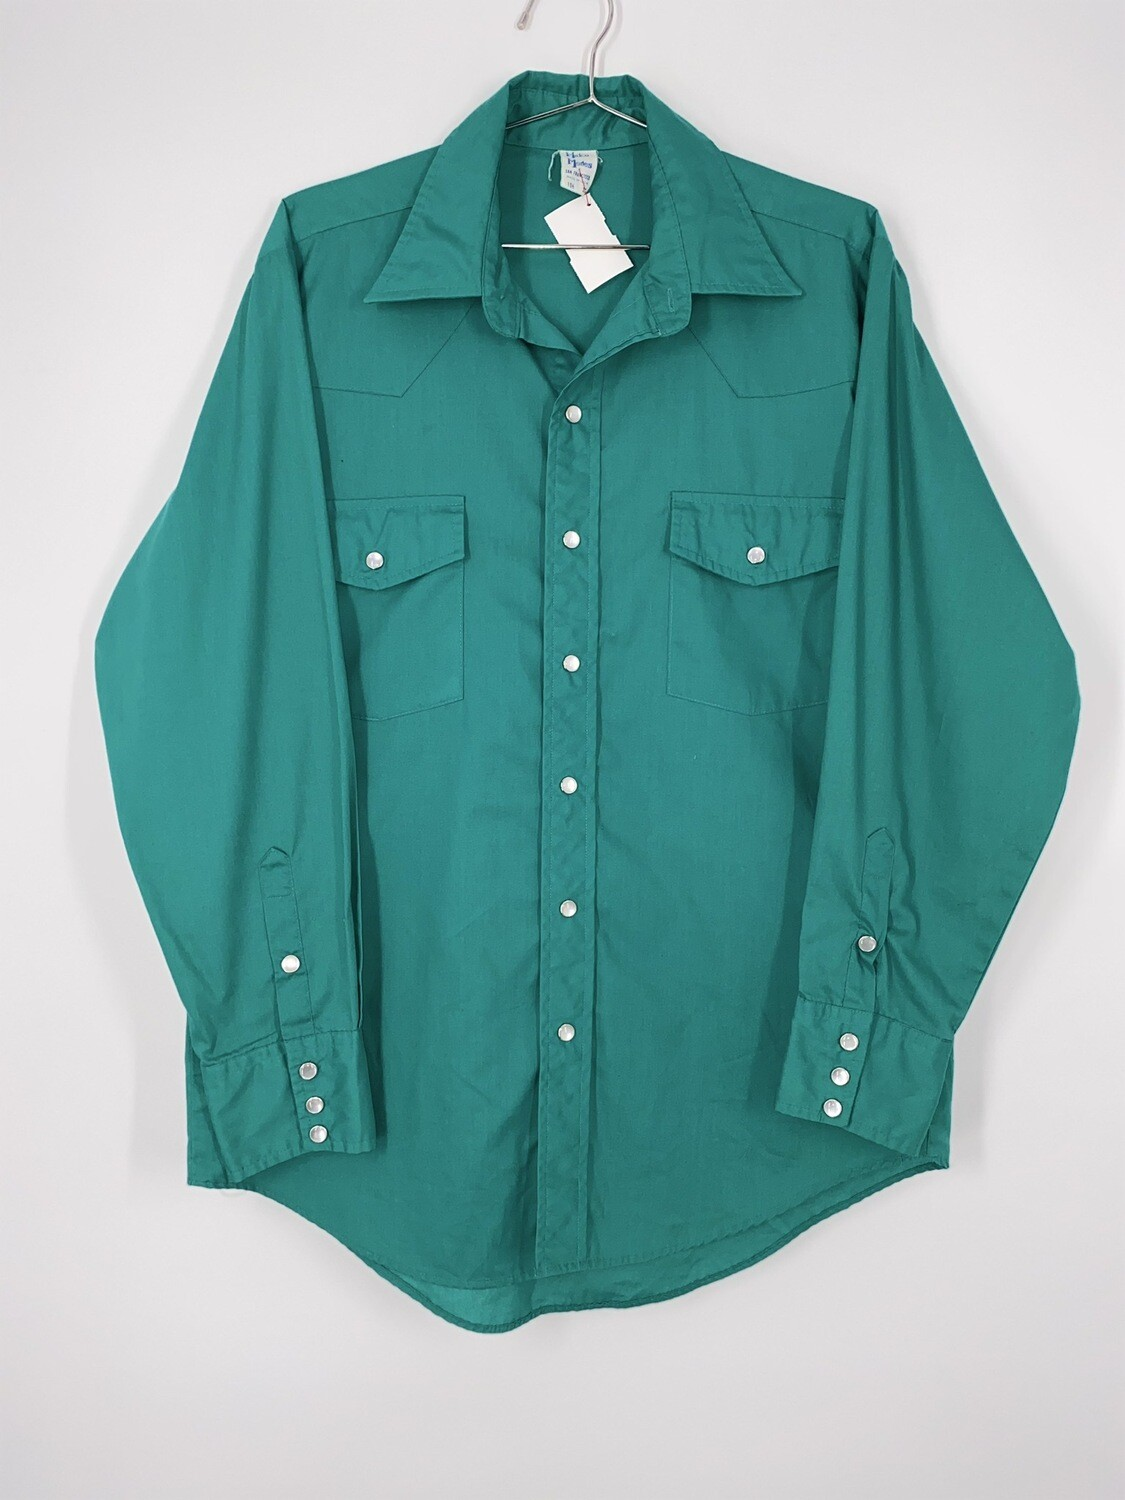 Make Modes Turquoise Western Style Button Up Size M